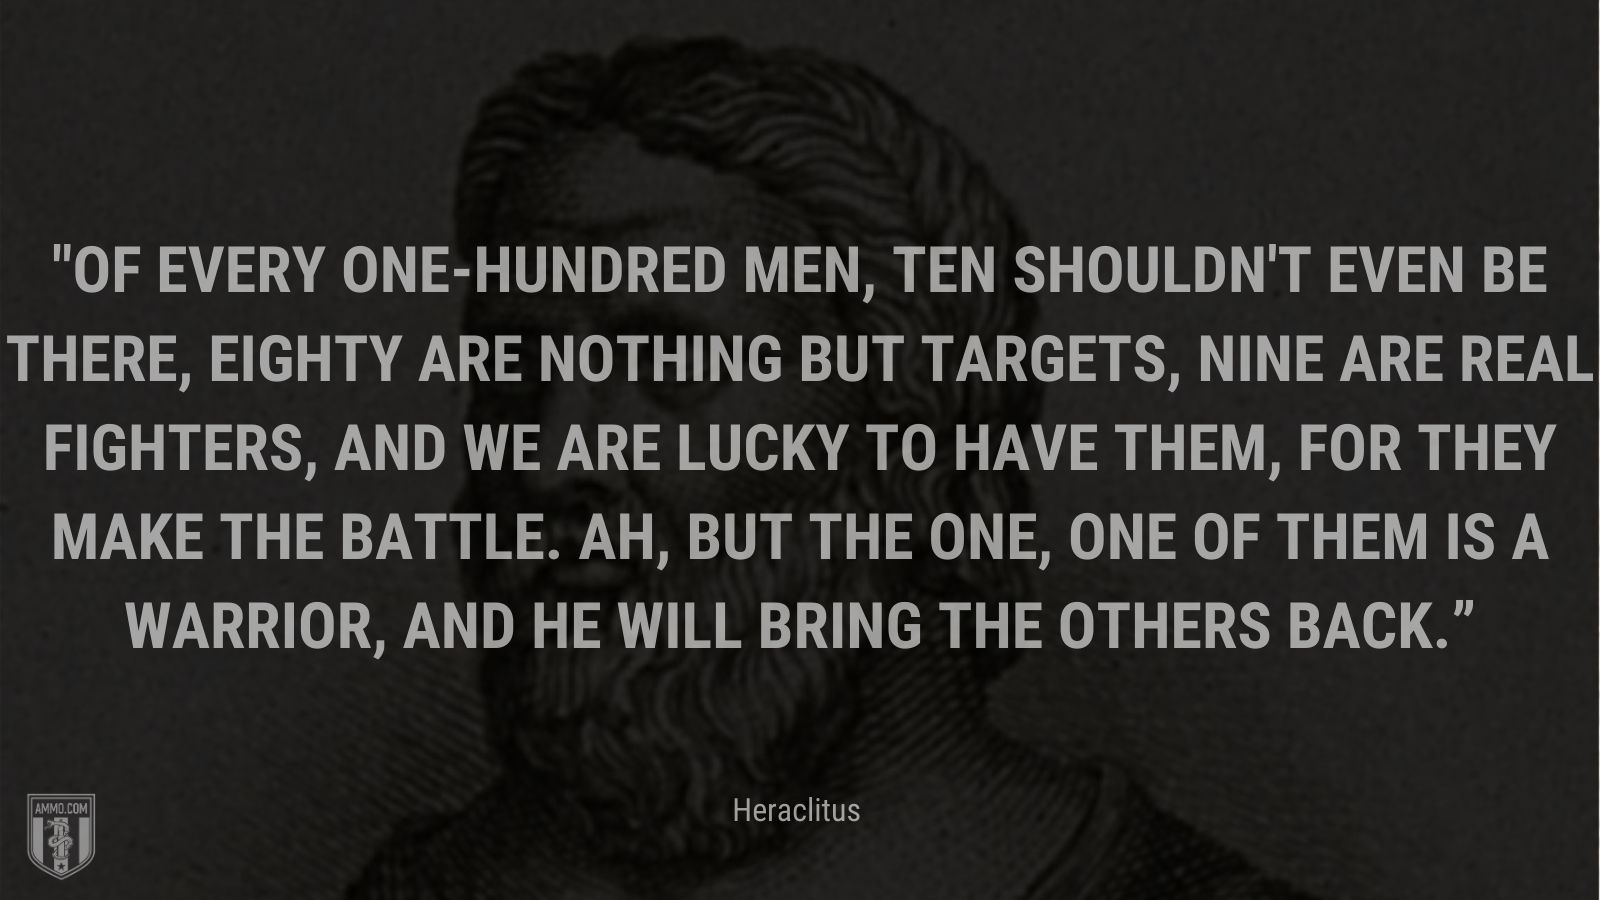 """""""Of every one-hundred men, ten shouldn't even be there, eighty are nothing but targets, nine are real fighters, and we are lucky to have them, for they make the battle. Ah, but the one, one of them is a warrior, and he will bring the others back."""" - Heraclitus"""